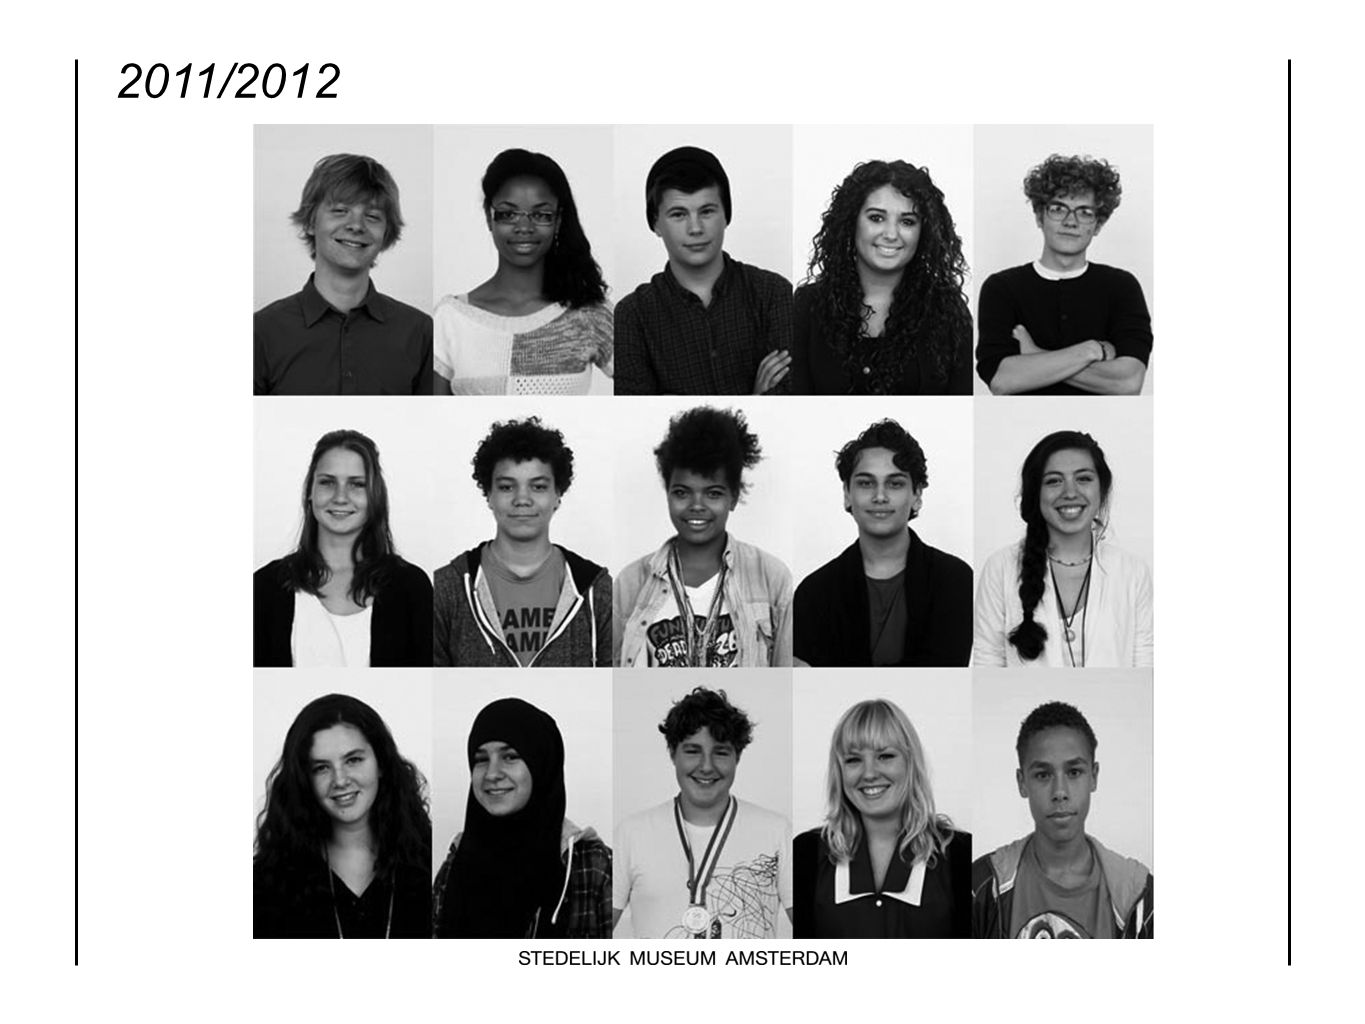 2011/2012 The third group